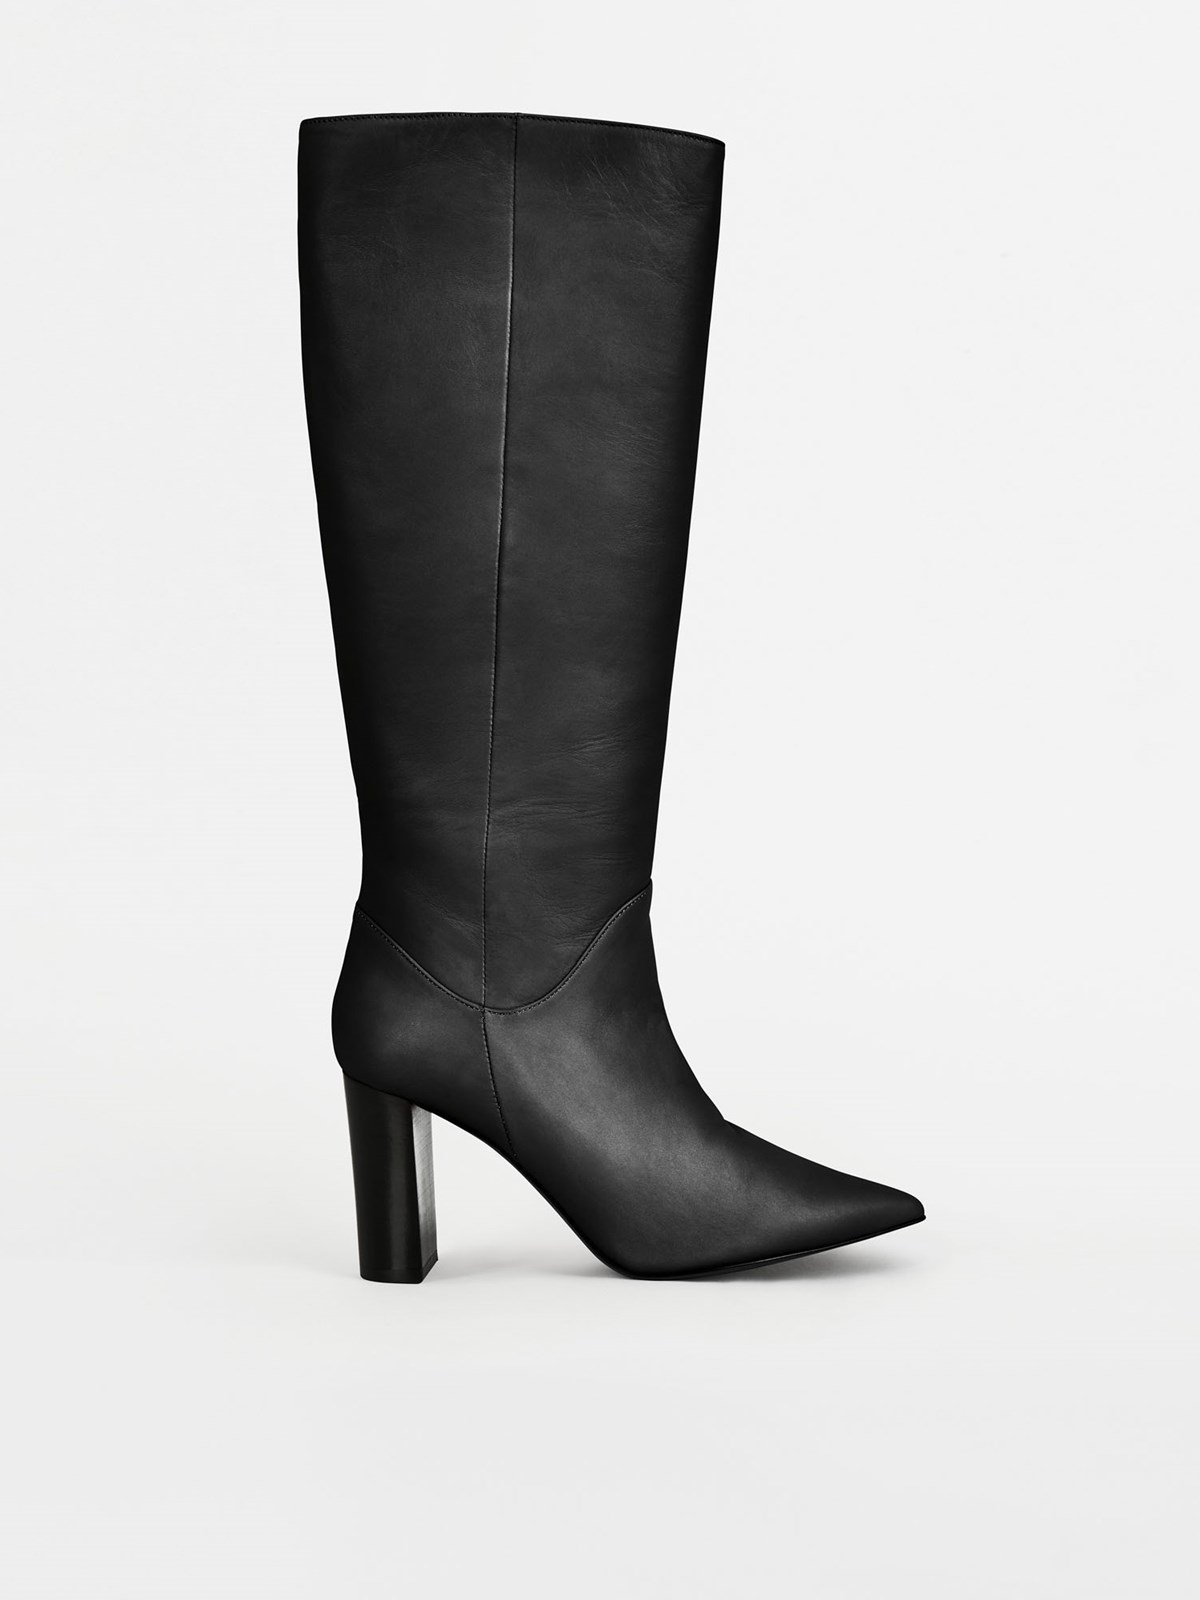 Gaeta Black Knee High Boots